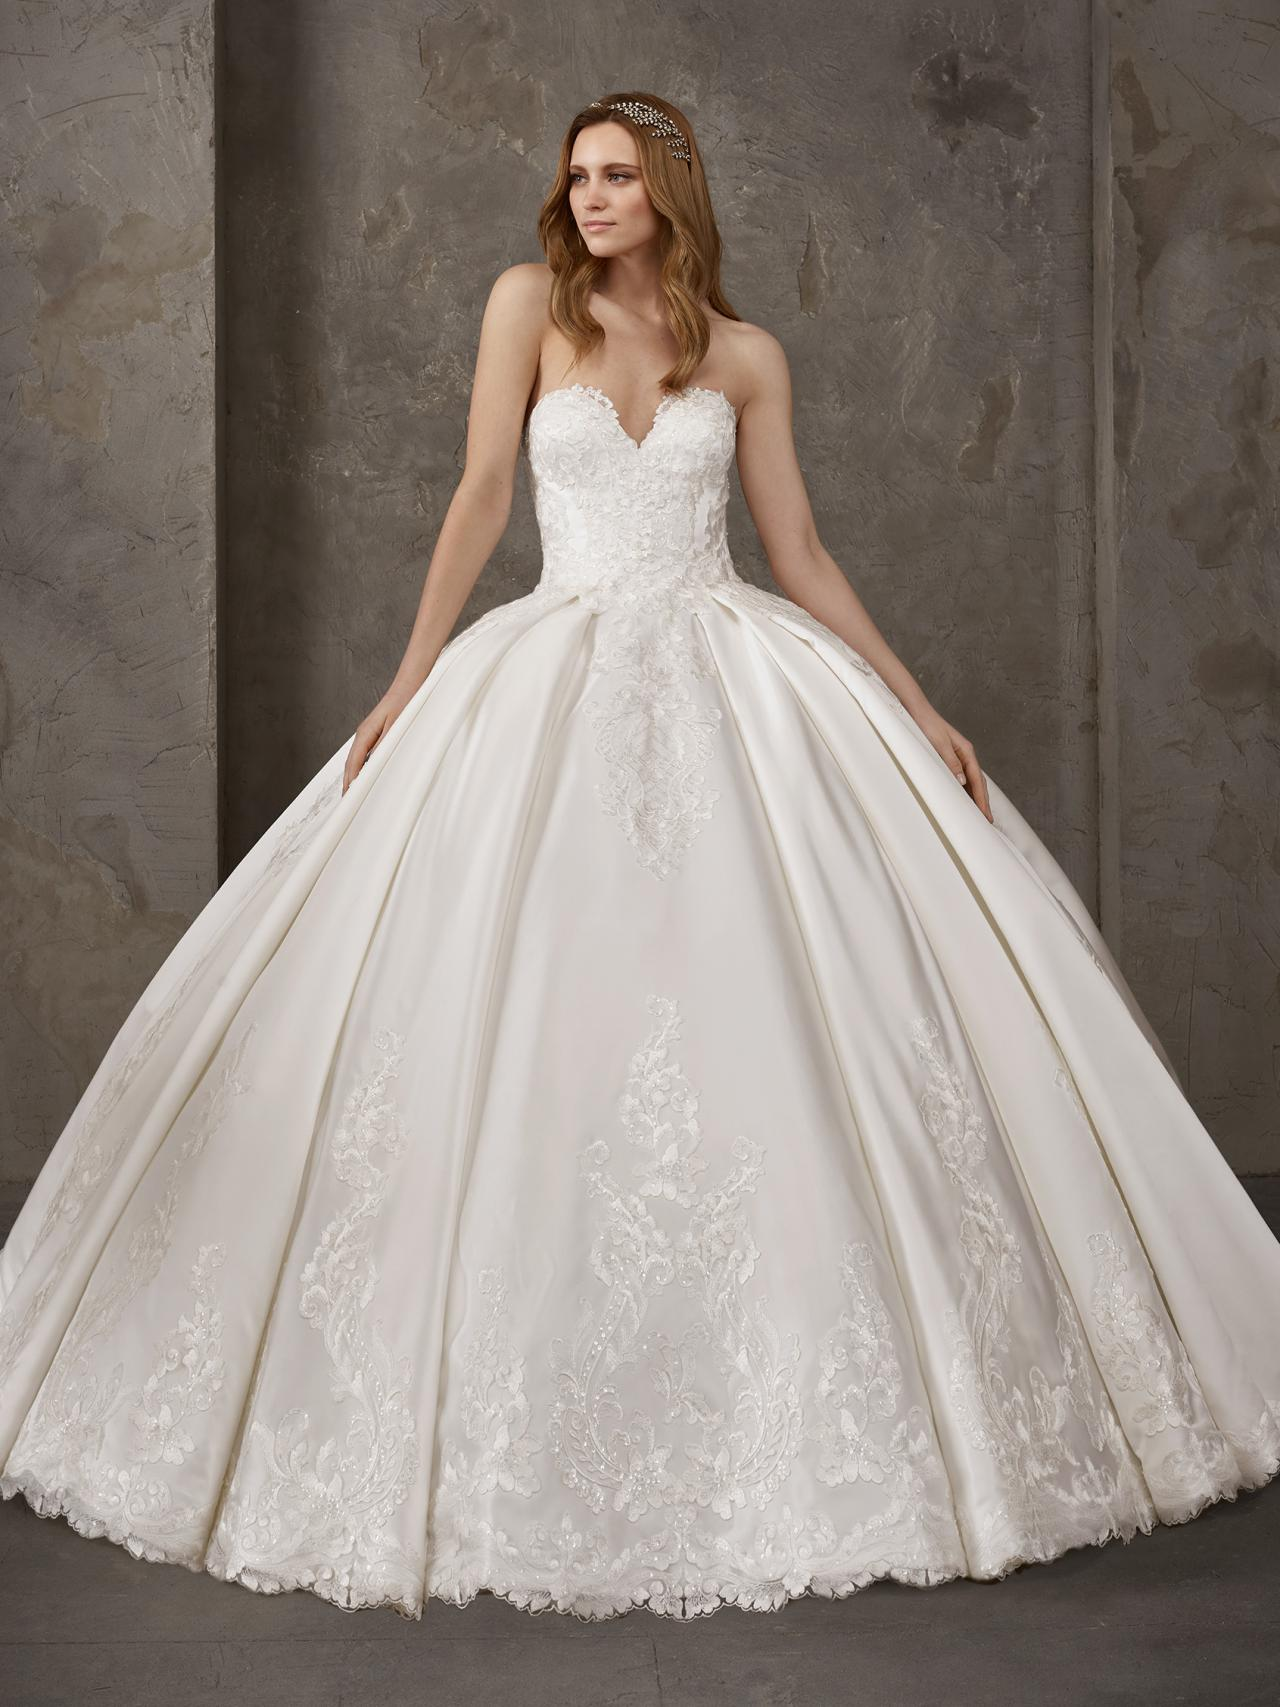 strapless wedding dresses,white sexy wedding dresses,ball gown wedding dresses